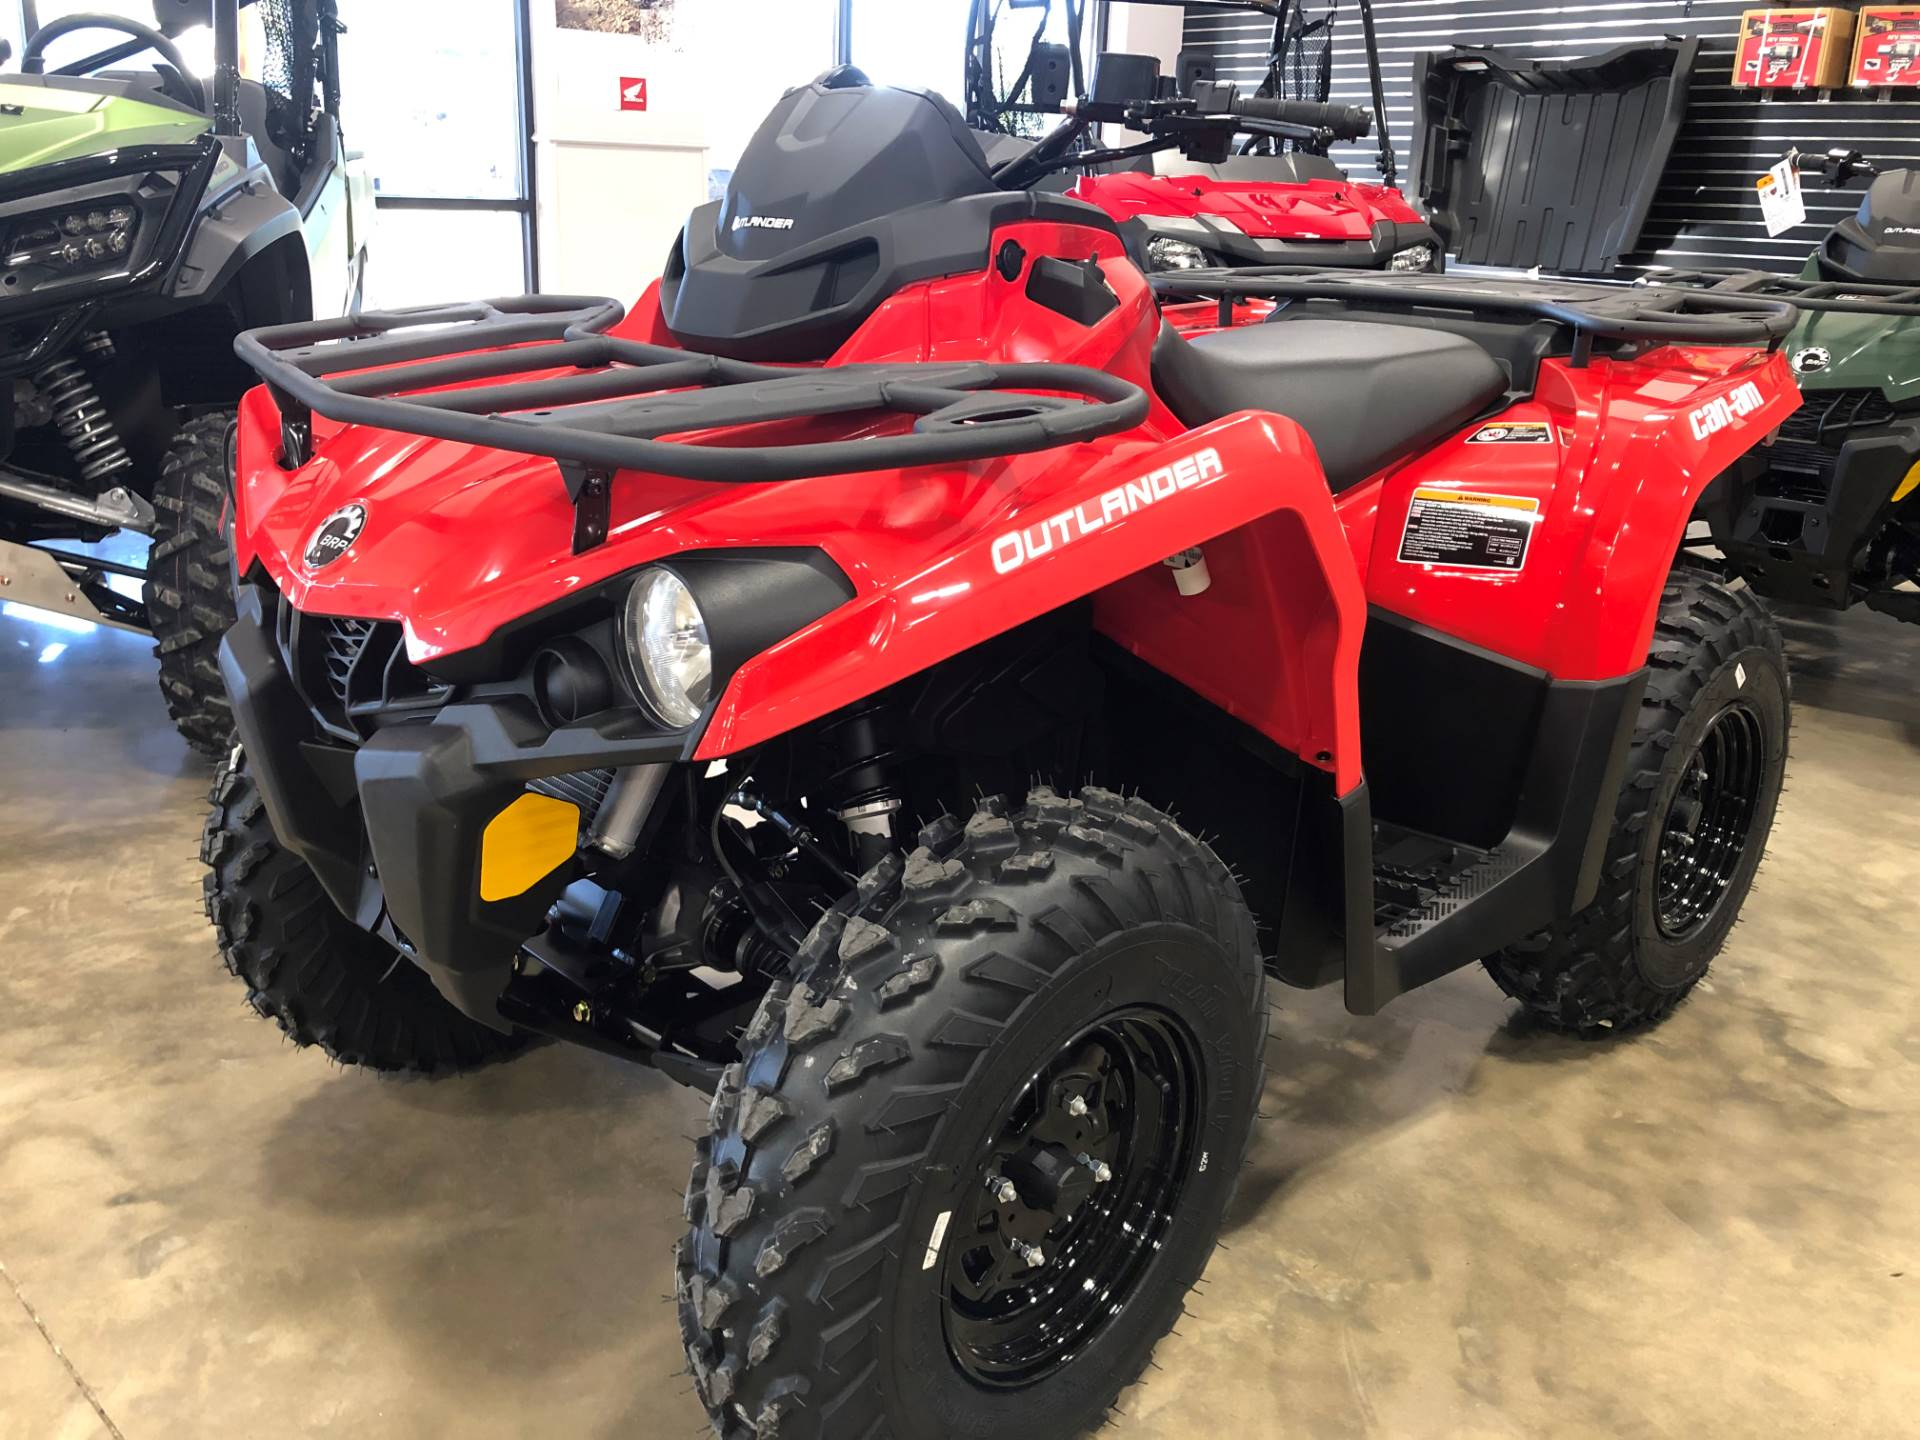 2021 Can-Am Outlander 570 in Leland, Mississippi - Photo 2